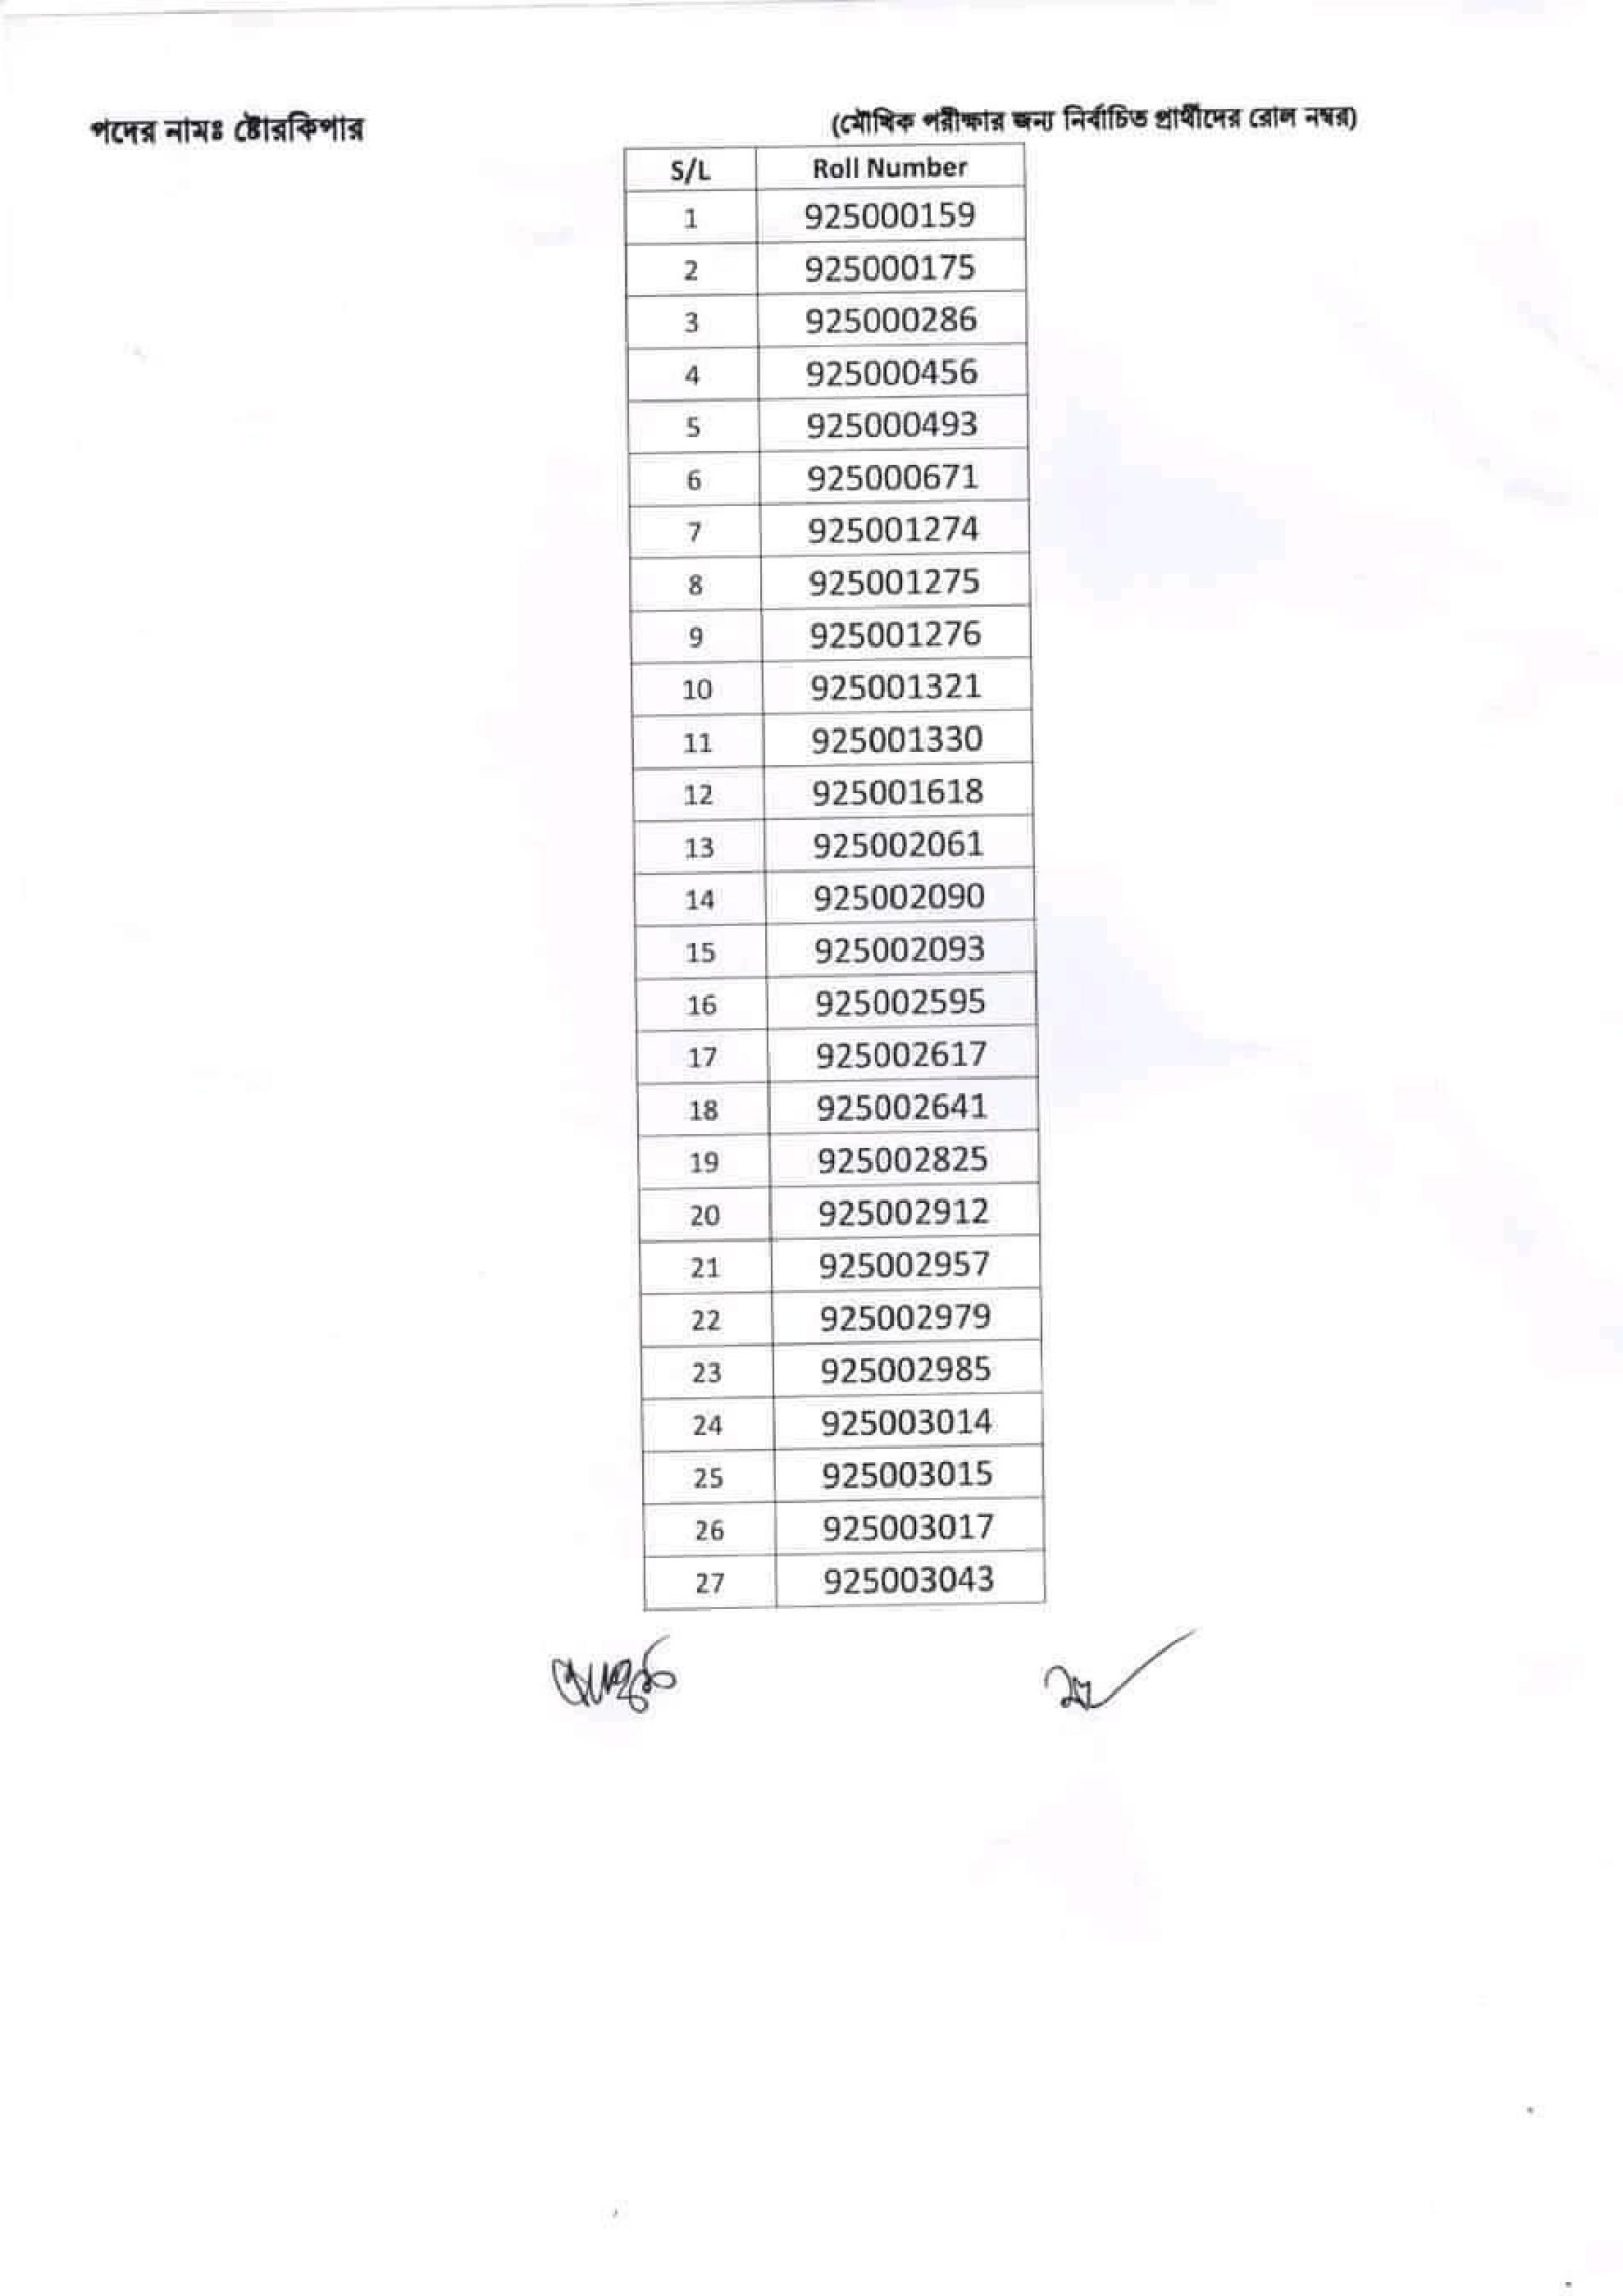 dss-result-page-004